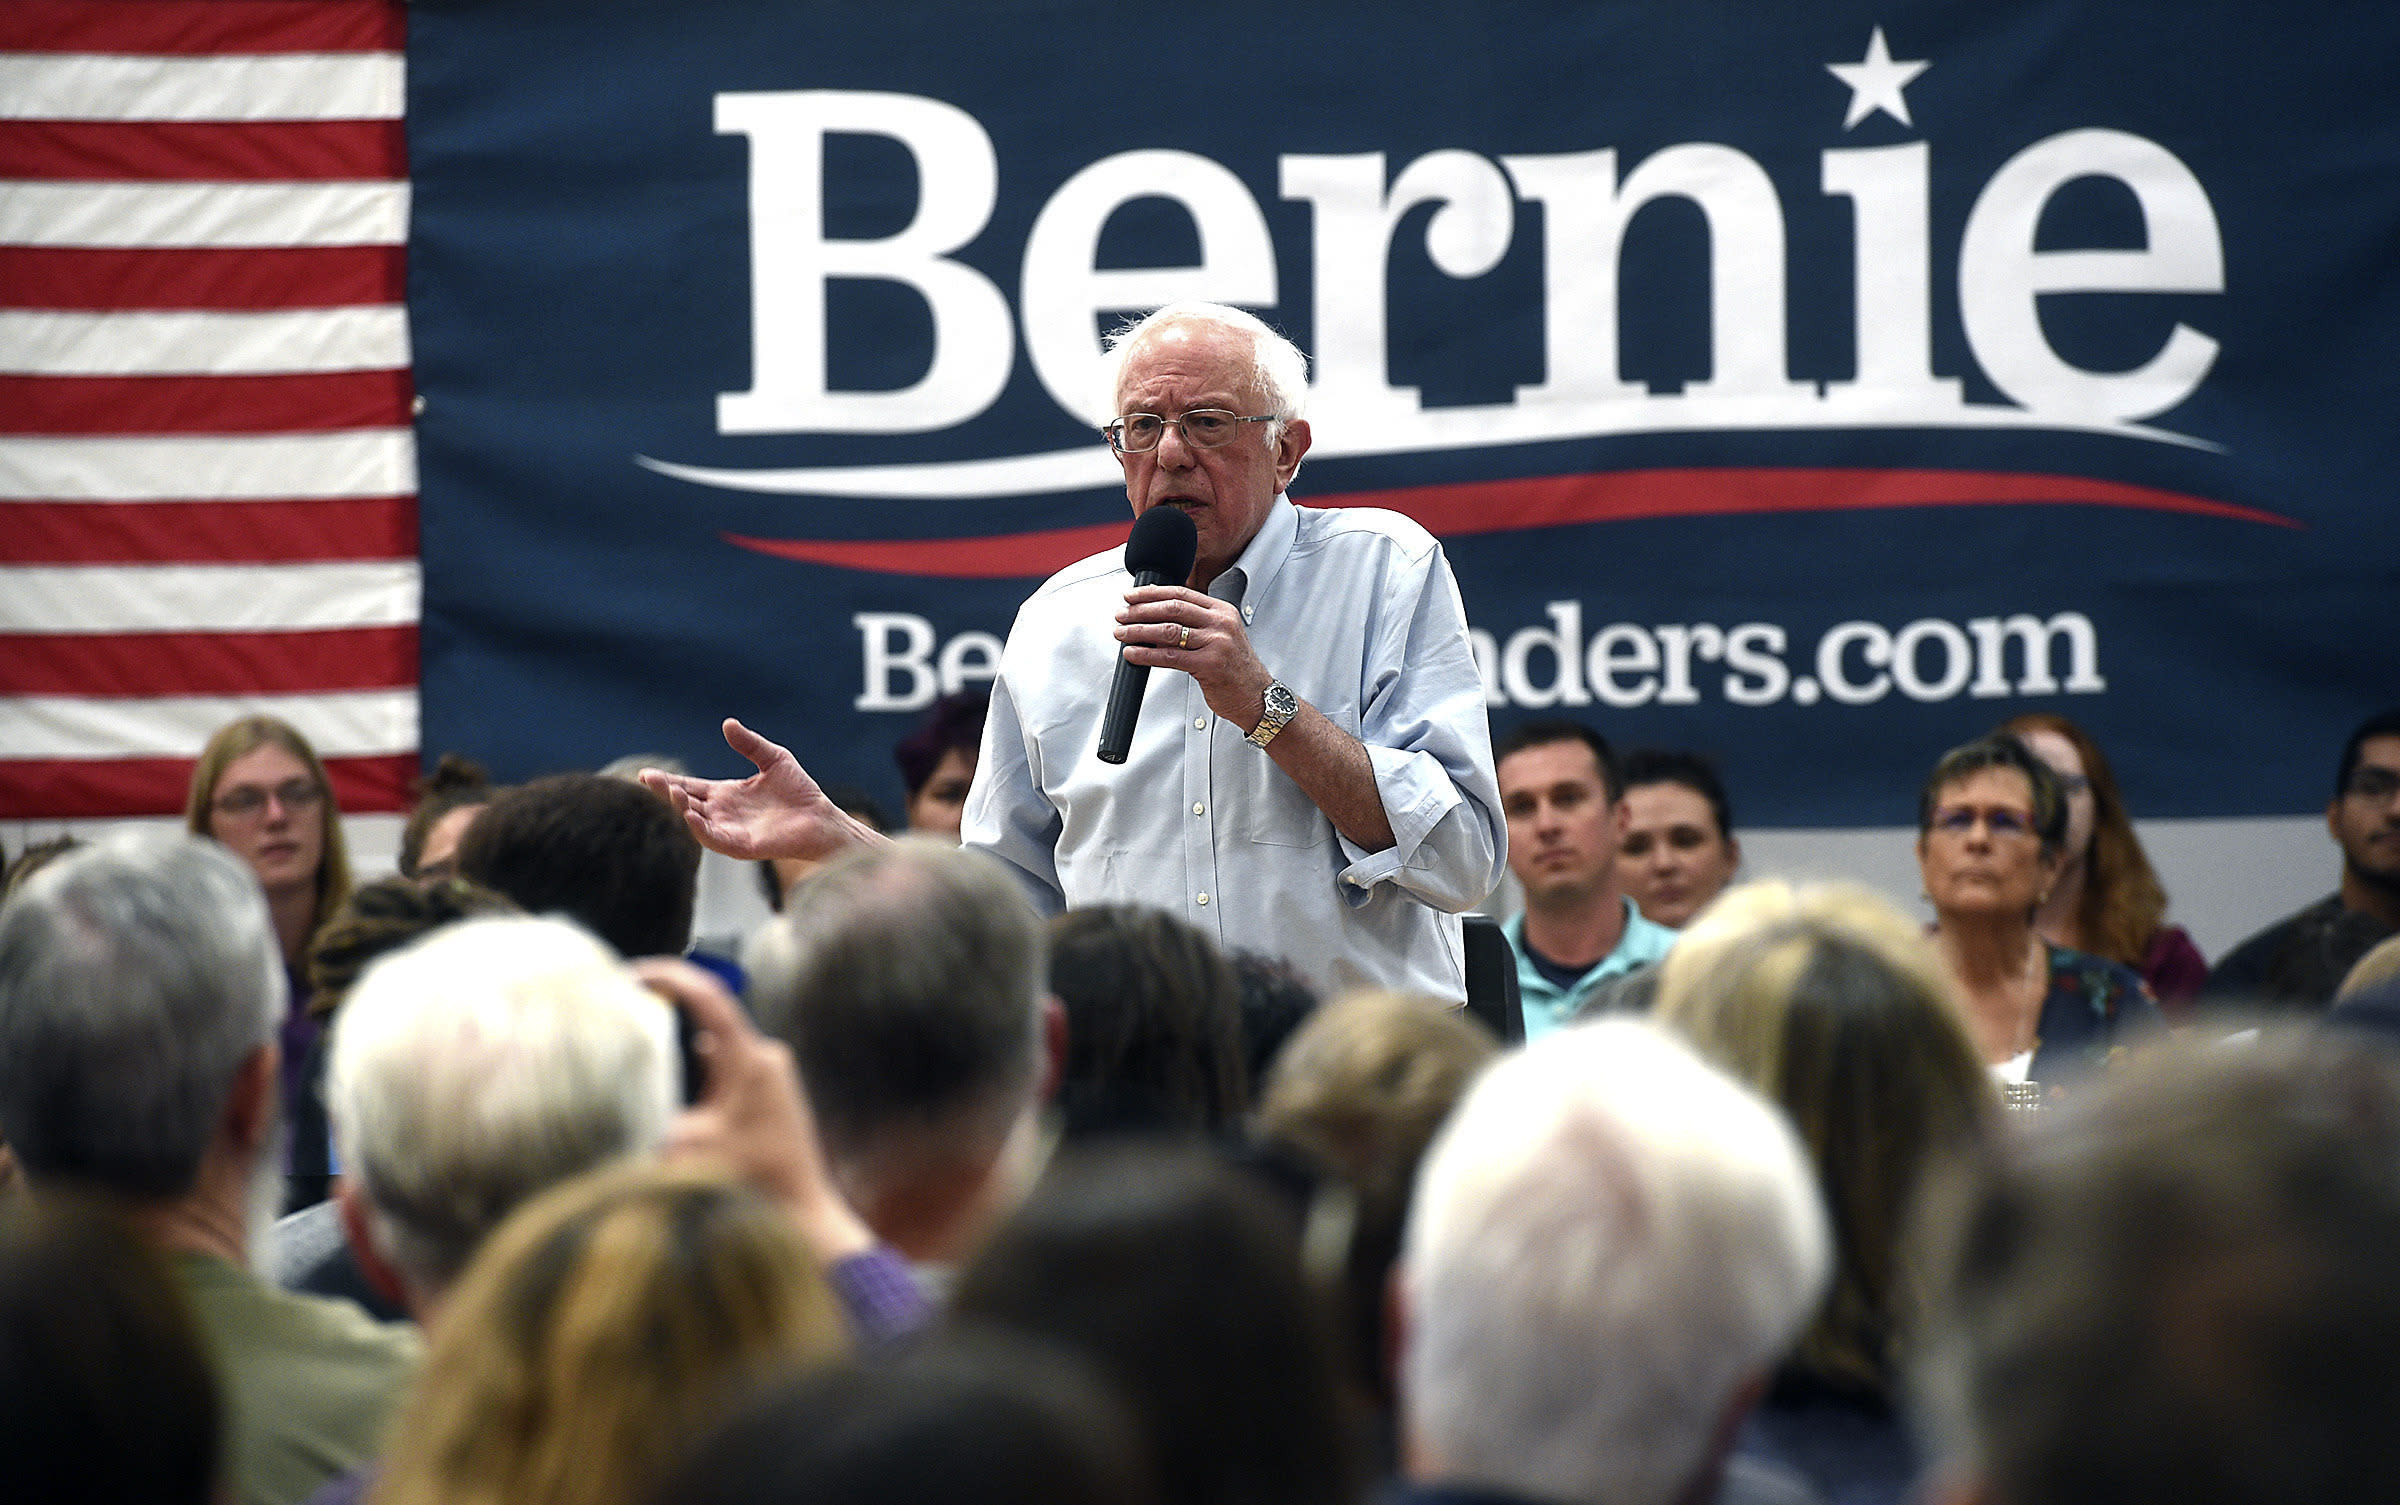 Bernie Sanders hospitalized with artery blockage, cancels campaign events